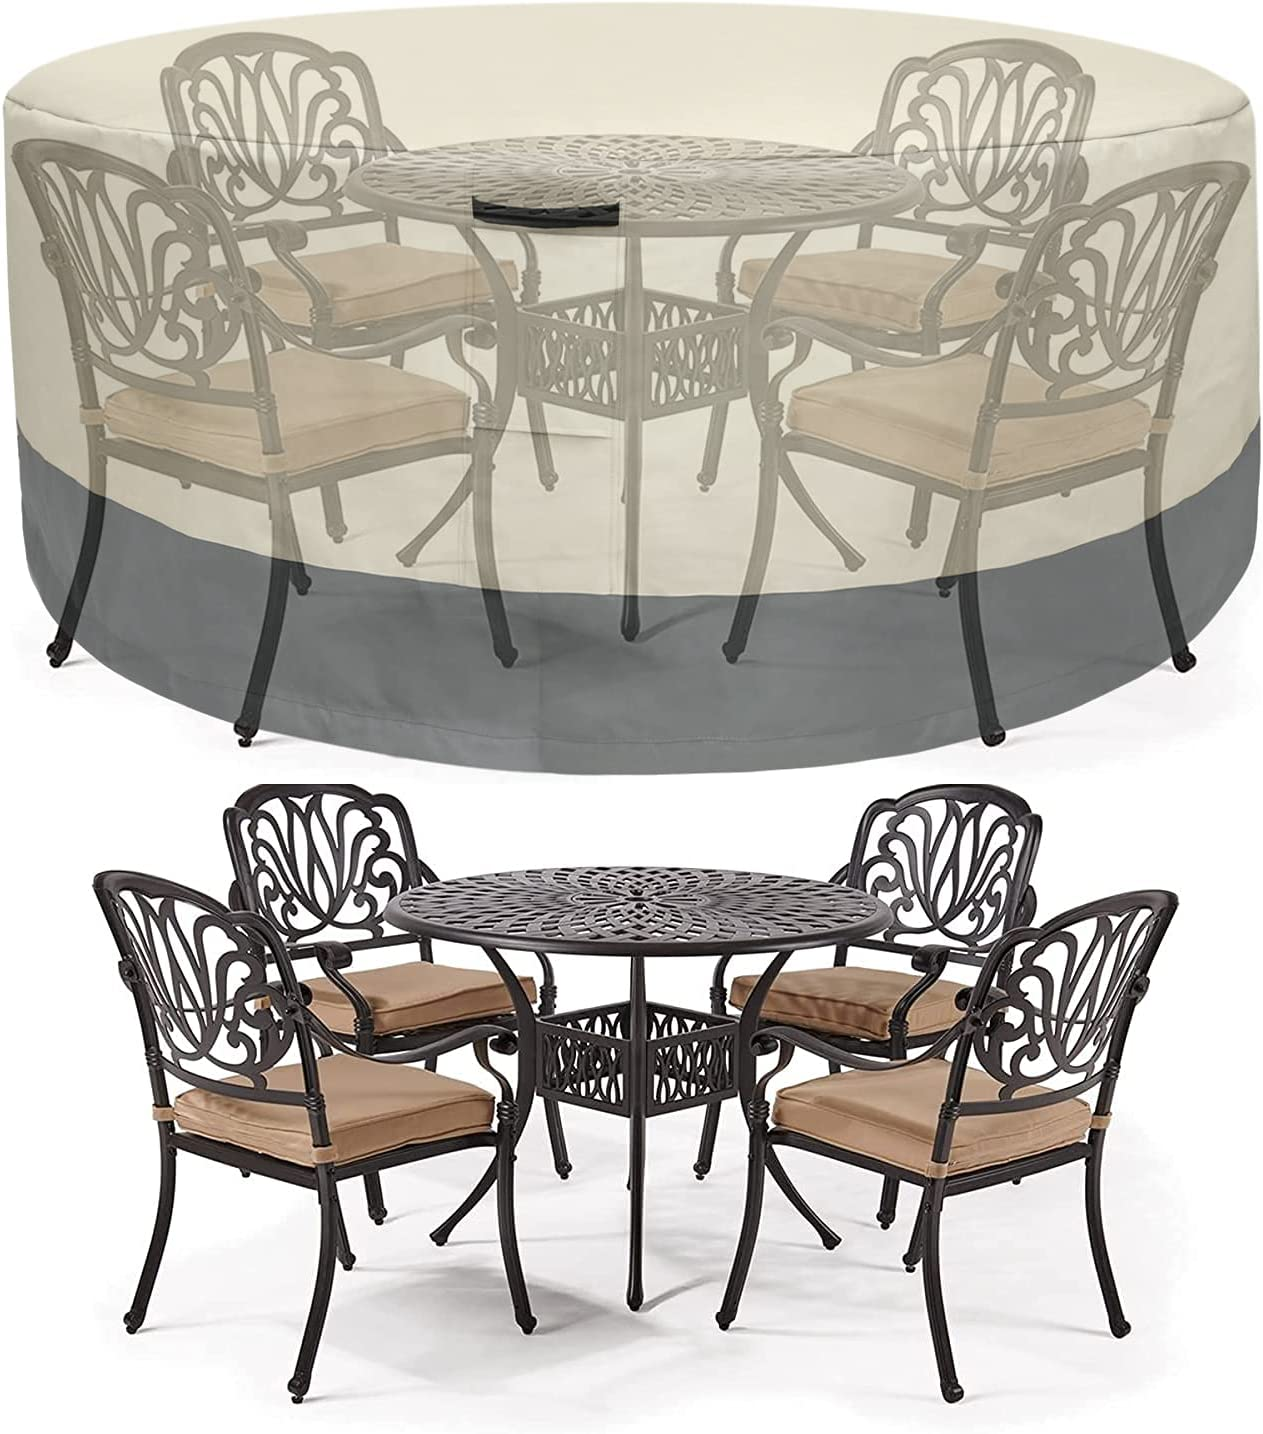 Ysding Upgraded Patio Furniture Set Cover(62″X27.8″),Outdoor Lawn Furniture Set Covers Waterproof, Rain Snow Dust Wind-Proof, Anti-UV,600D Oxford Cloth Durable Round Patio Table and Chair Cover